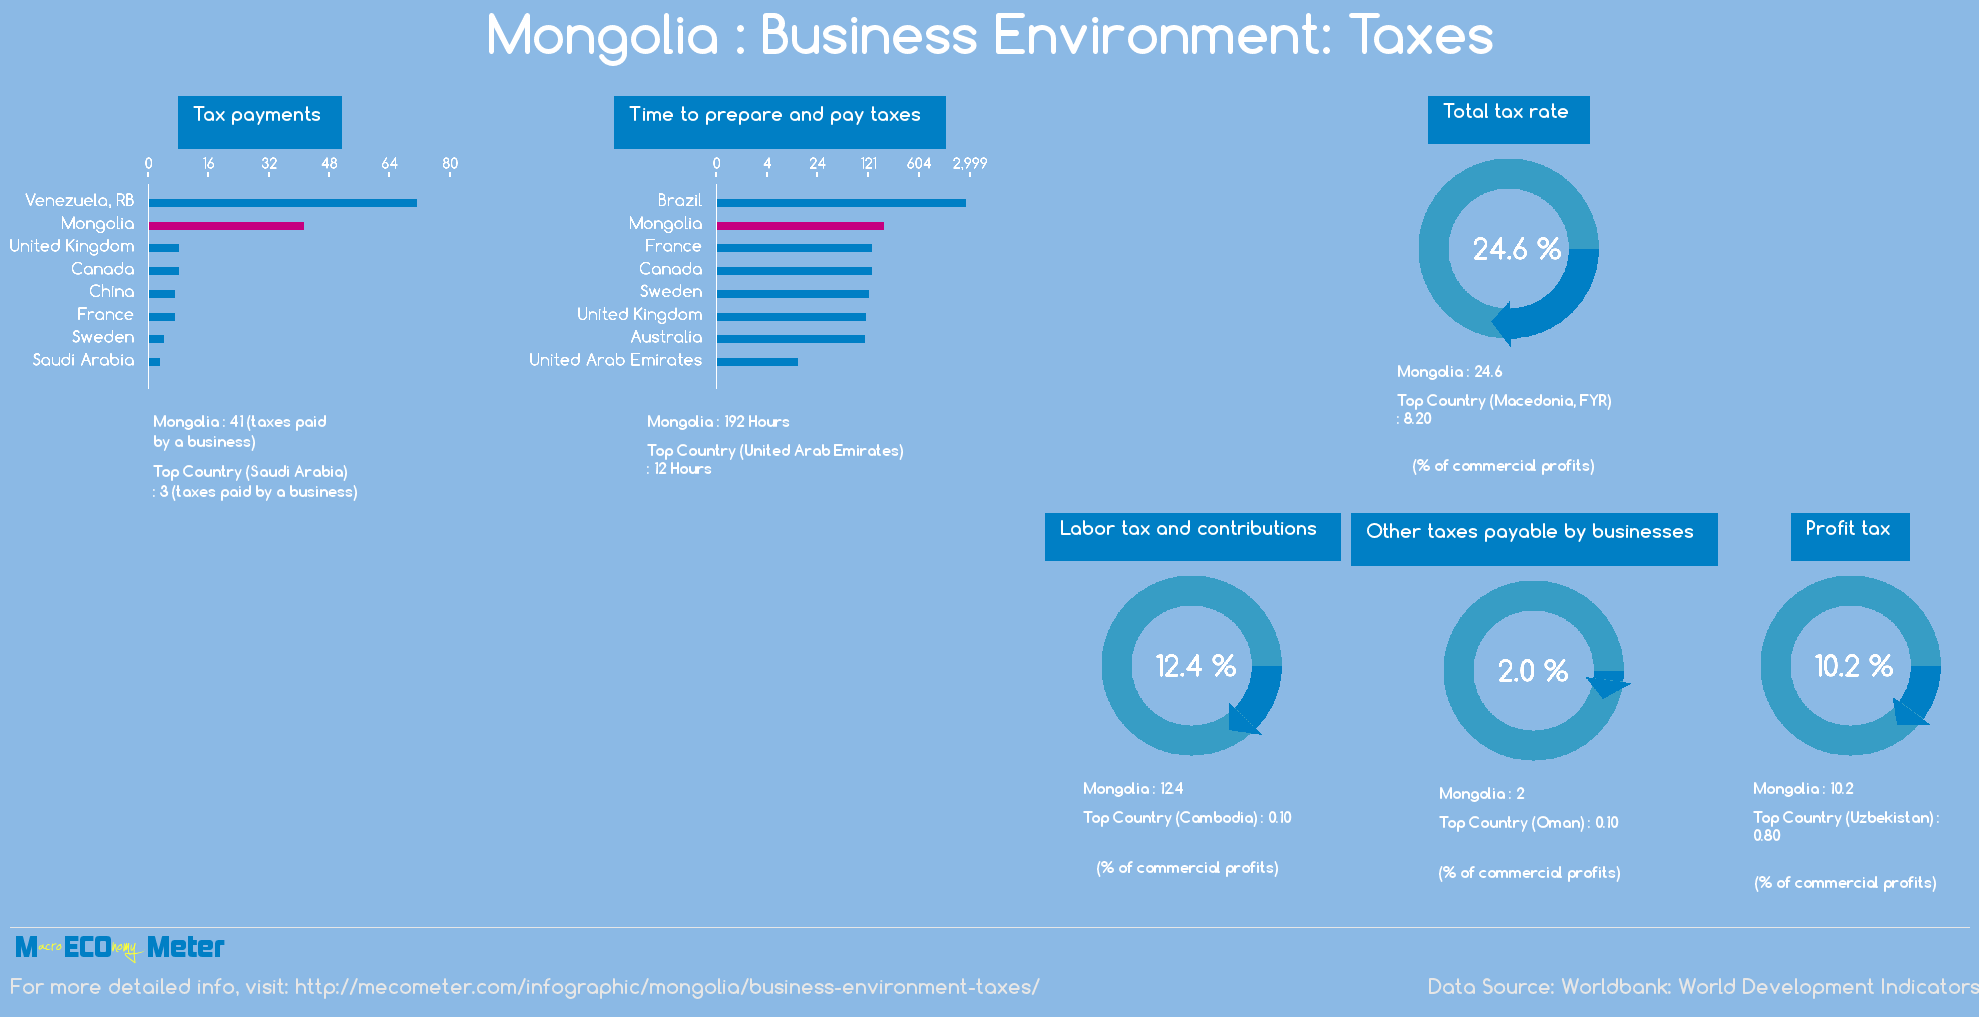 Mongolia : Business Environment: Taxes